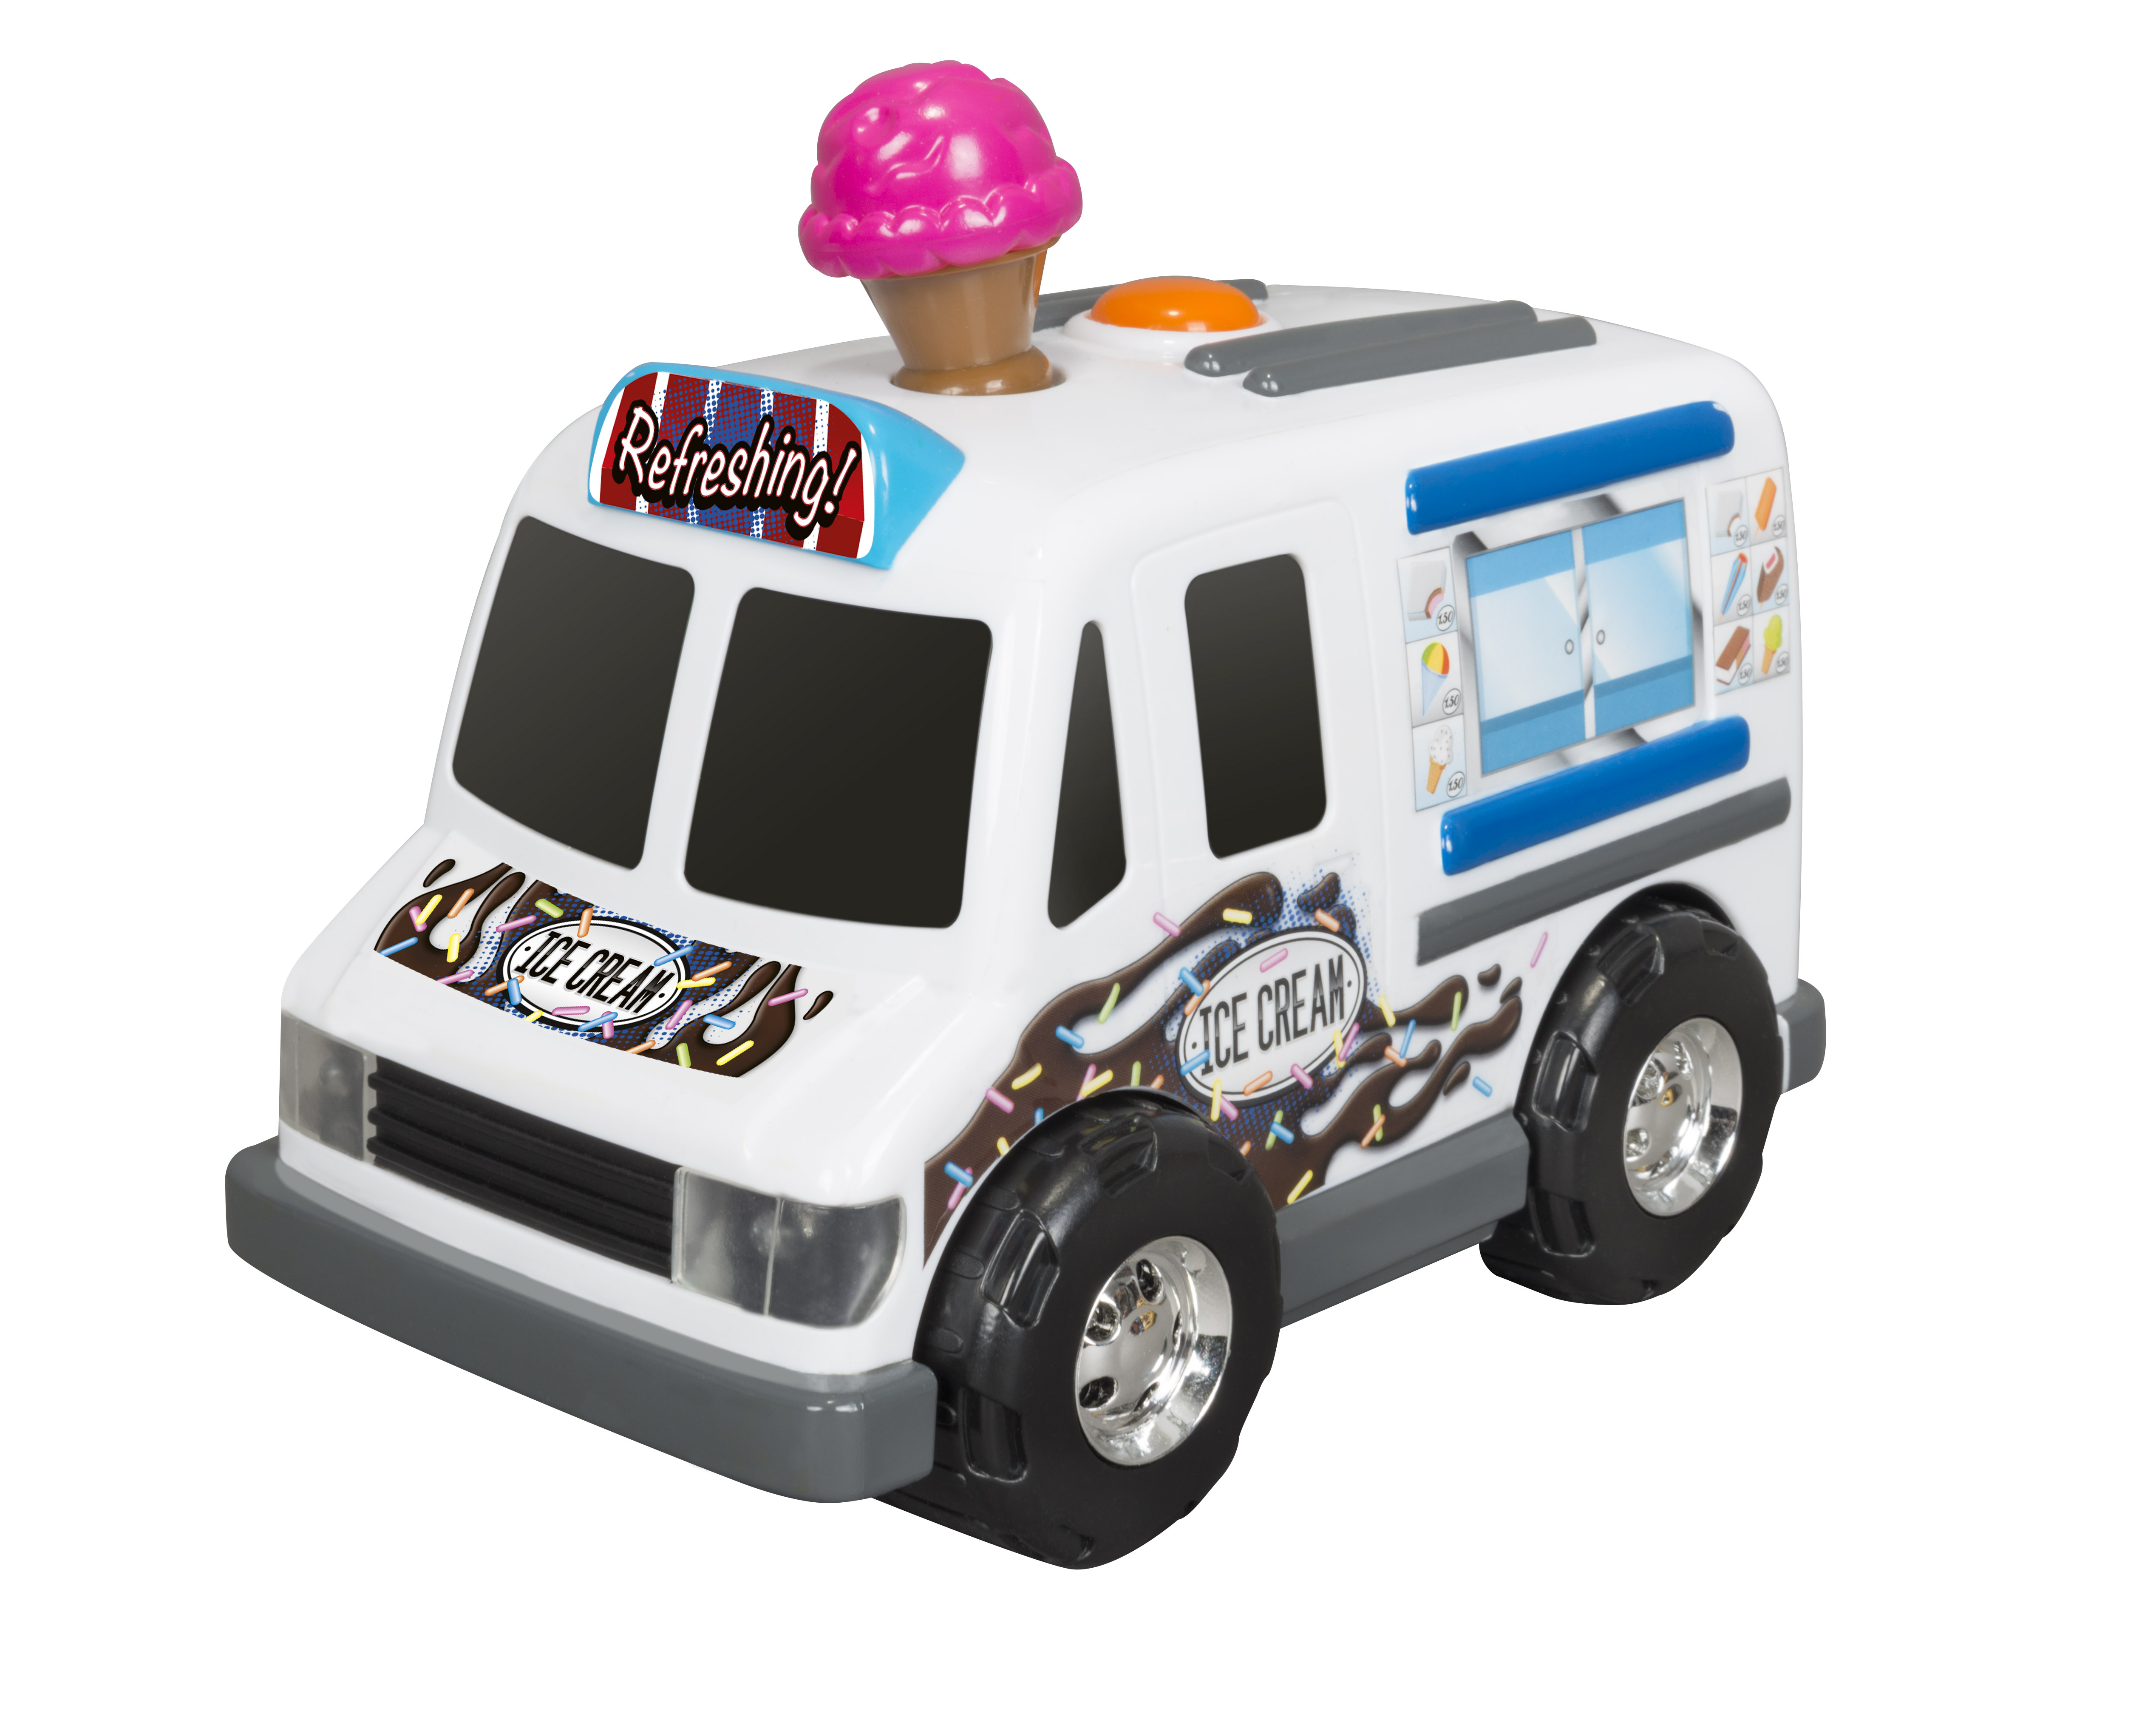 Adventure Force Food Truck Motorized Vehicle, Ice Cream Truck by Toy State International Limited